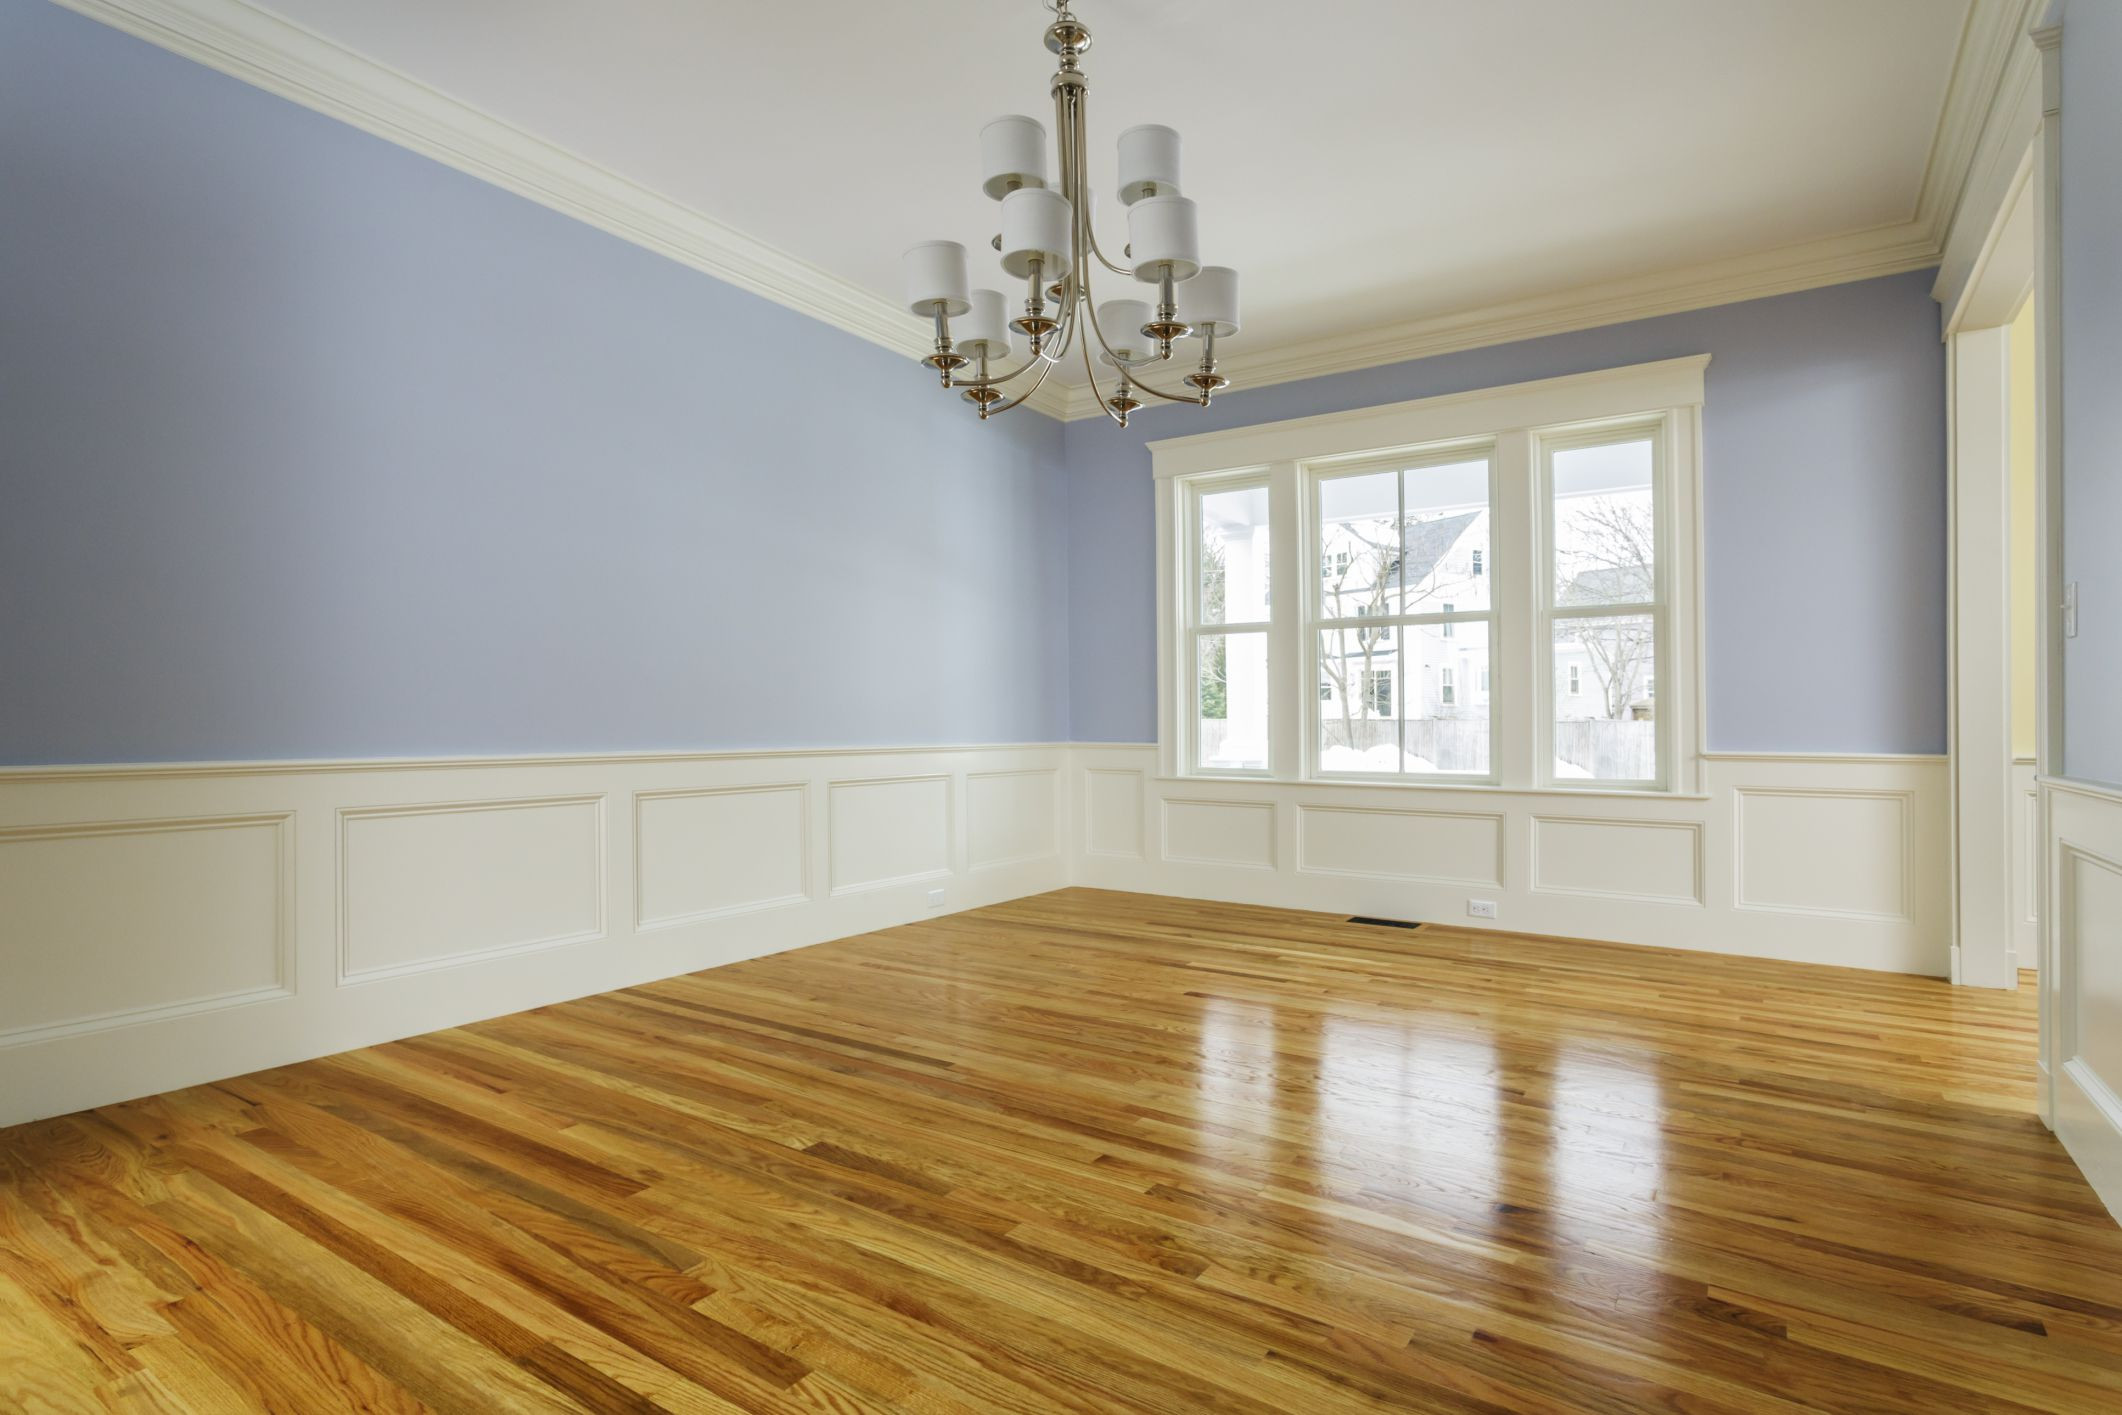 unfinished hardwood flooring canada of the cost to refinish hardwood floors throughout 168686572 highres 56a2fd773df78cf7727b6cb3